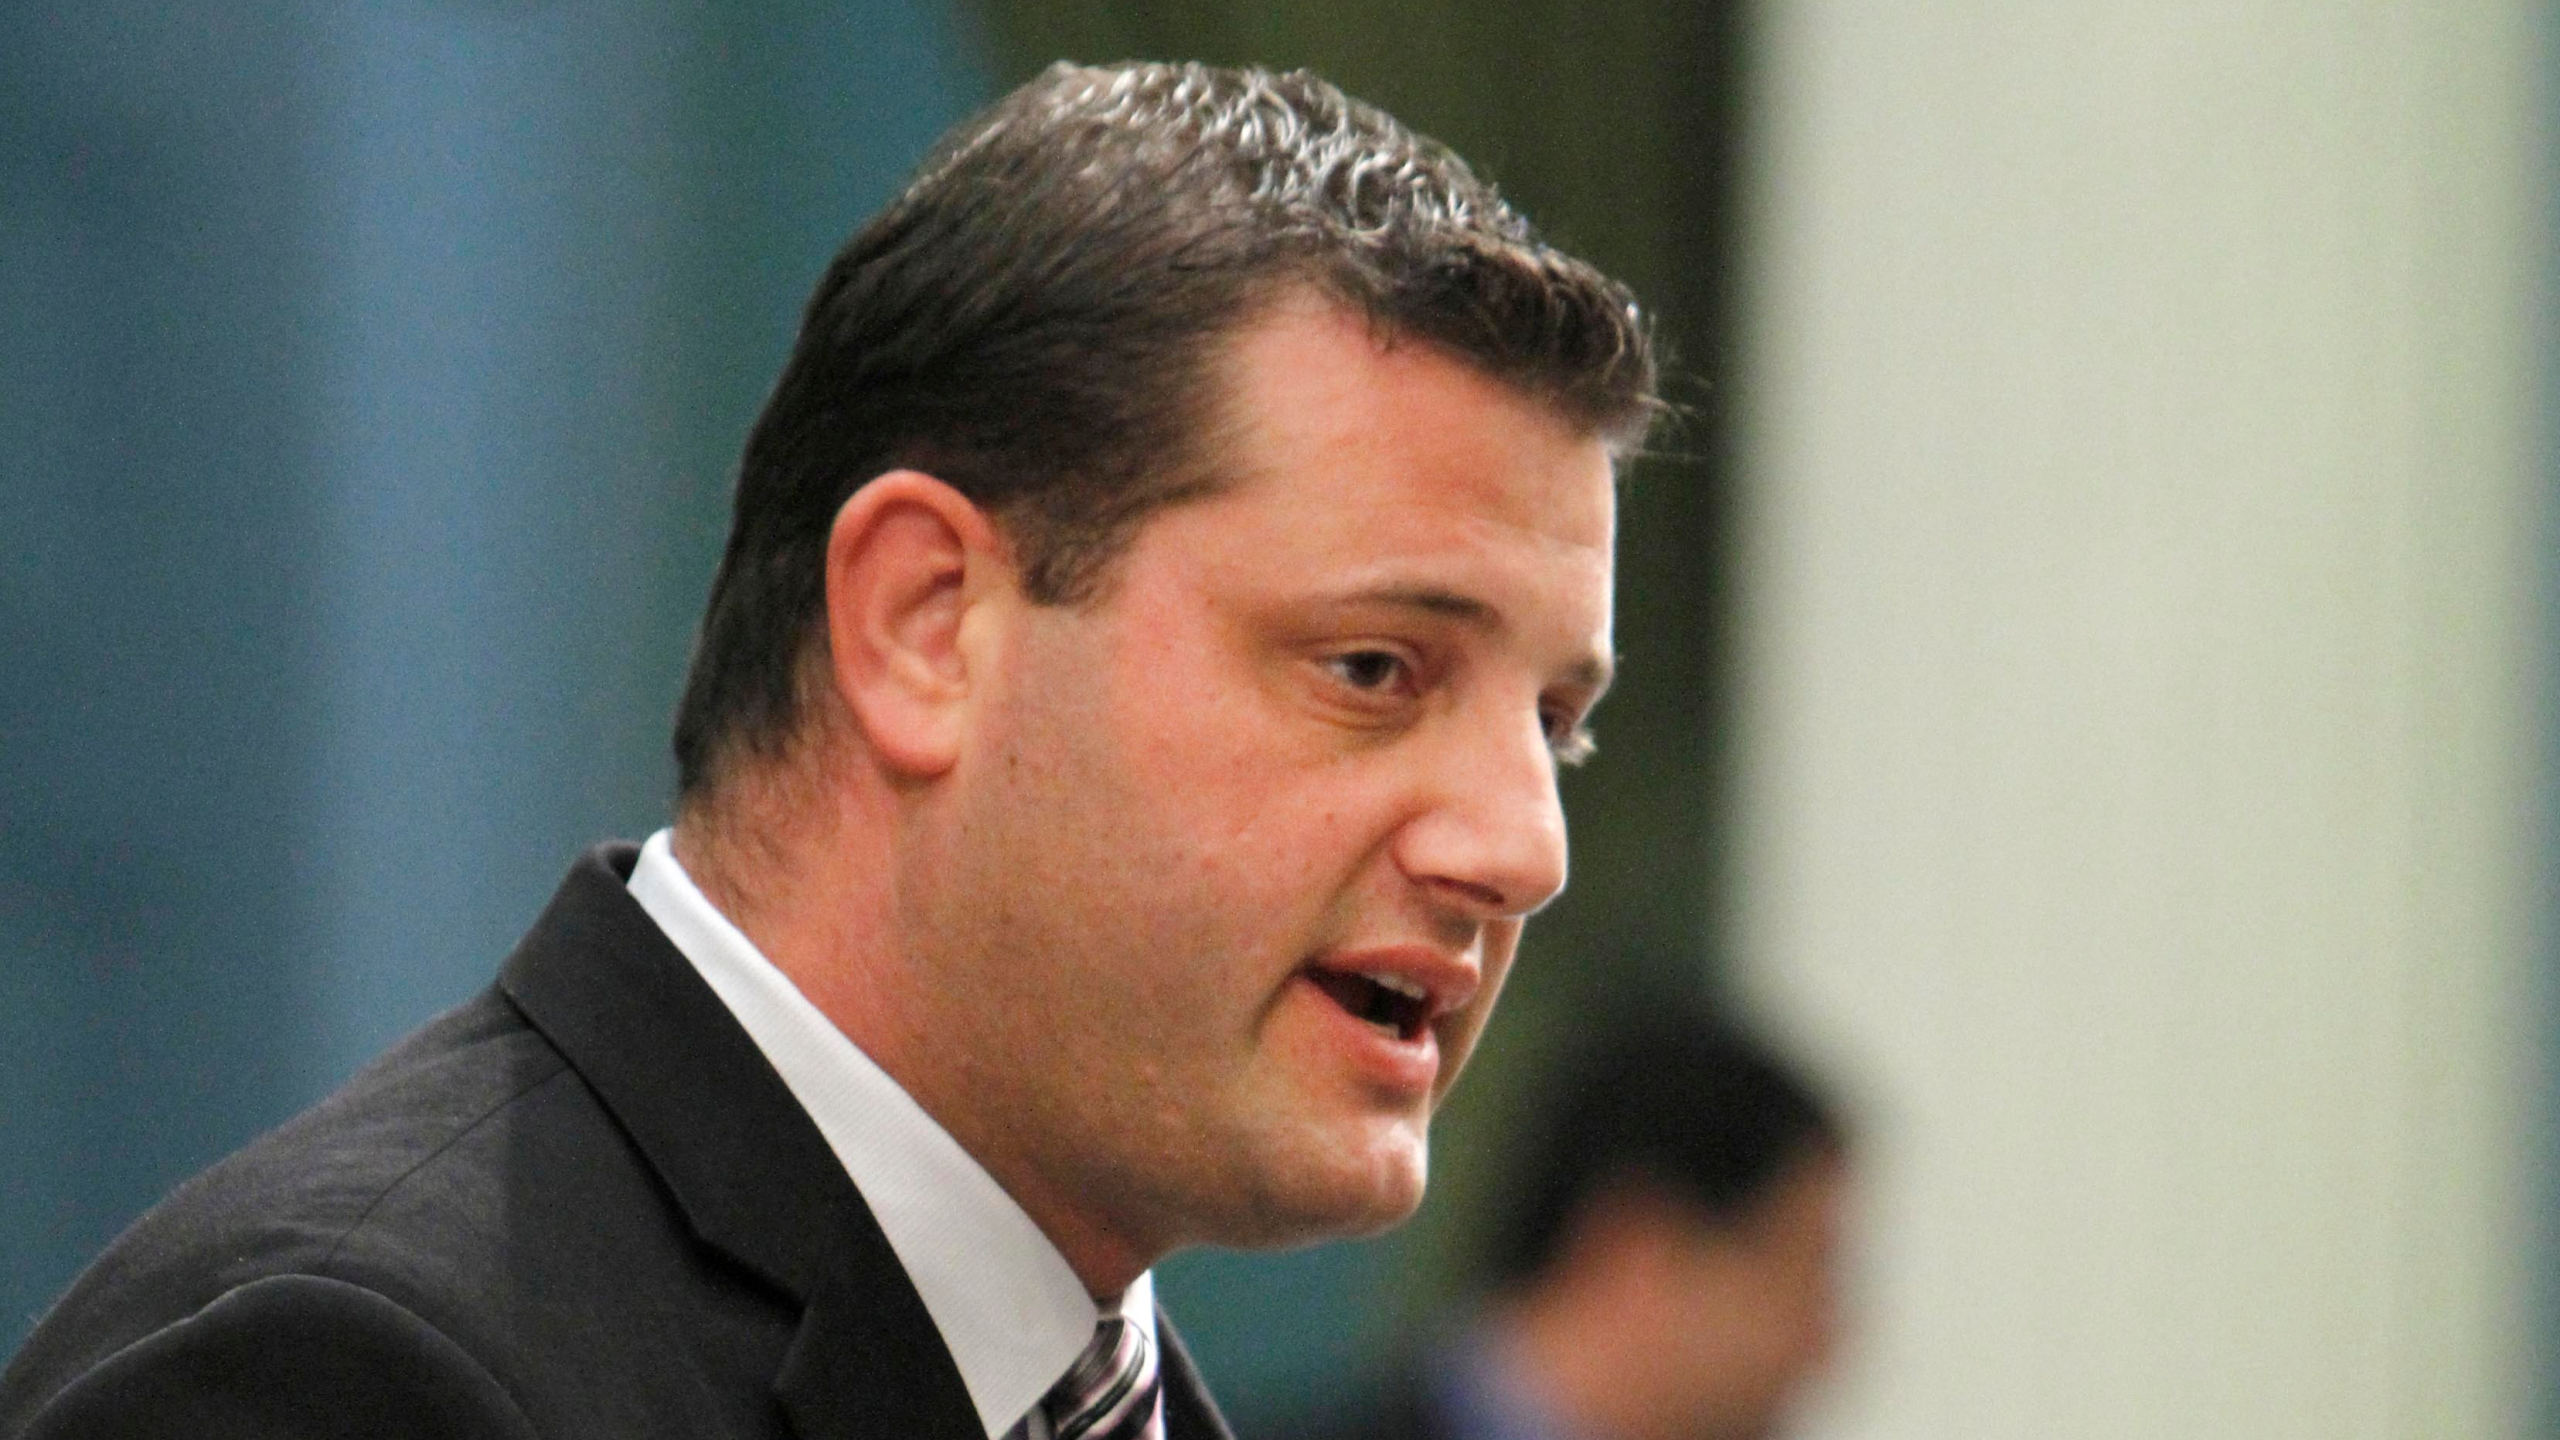 Then-California Assemblyman, now-Rep. David Valadao, R-Calif., speaks in Sacramento on July 5, 2012. (Rich Pedroncelli / Associated Press)